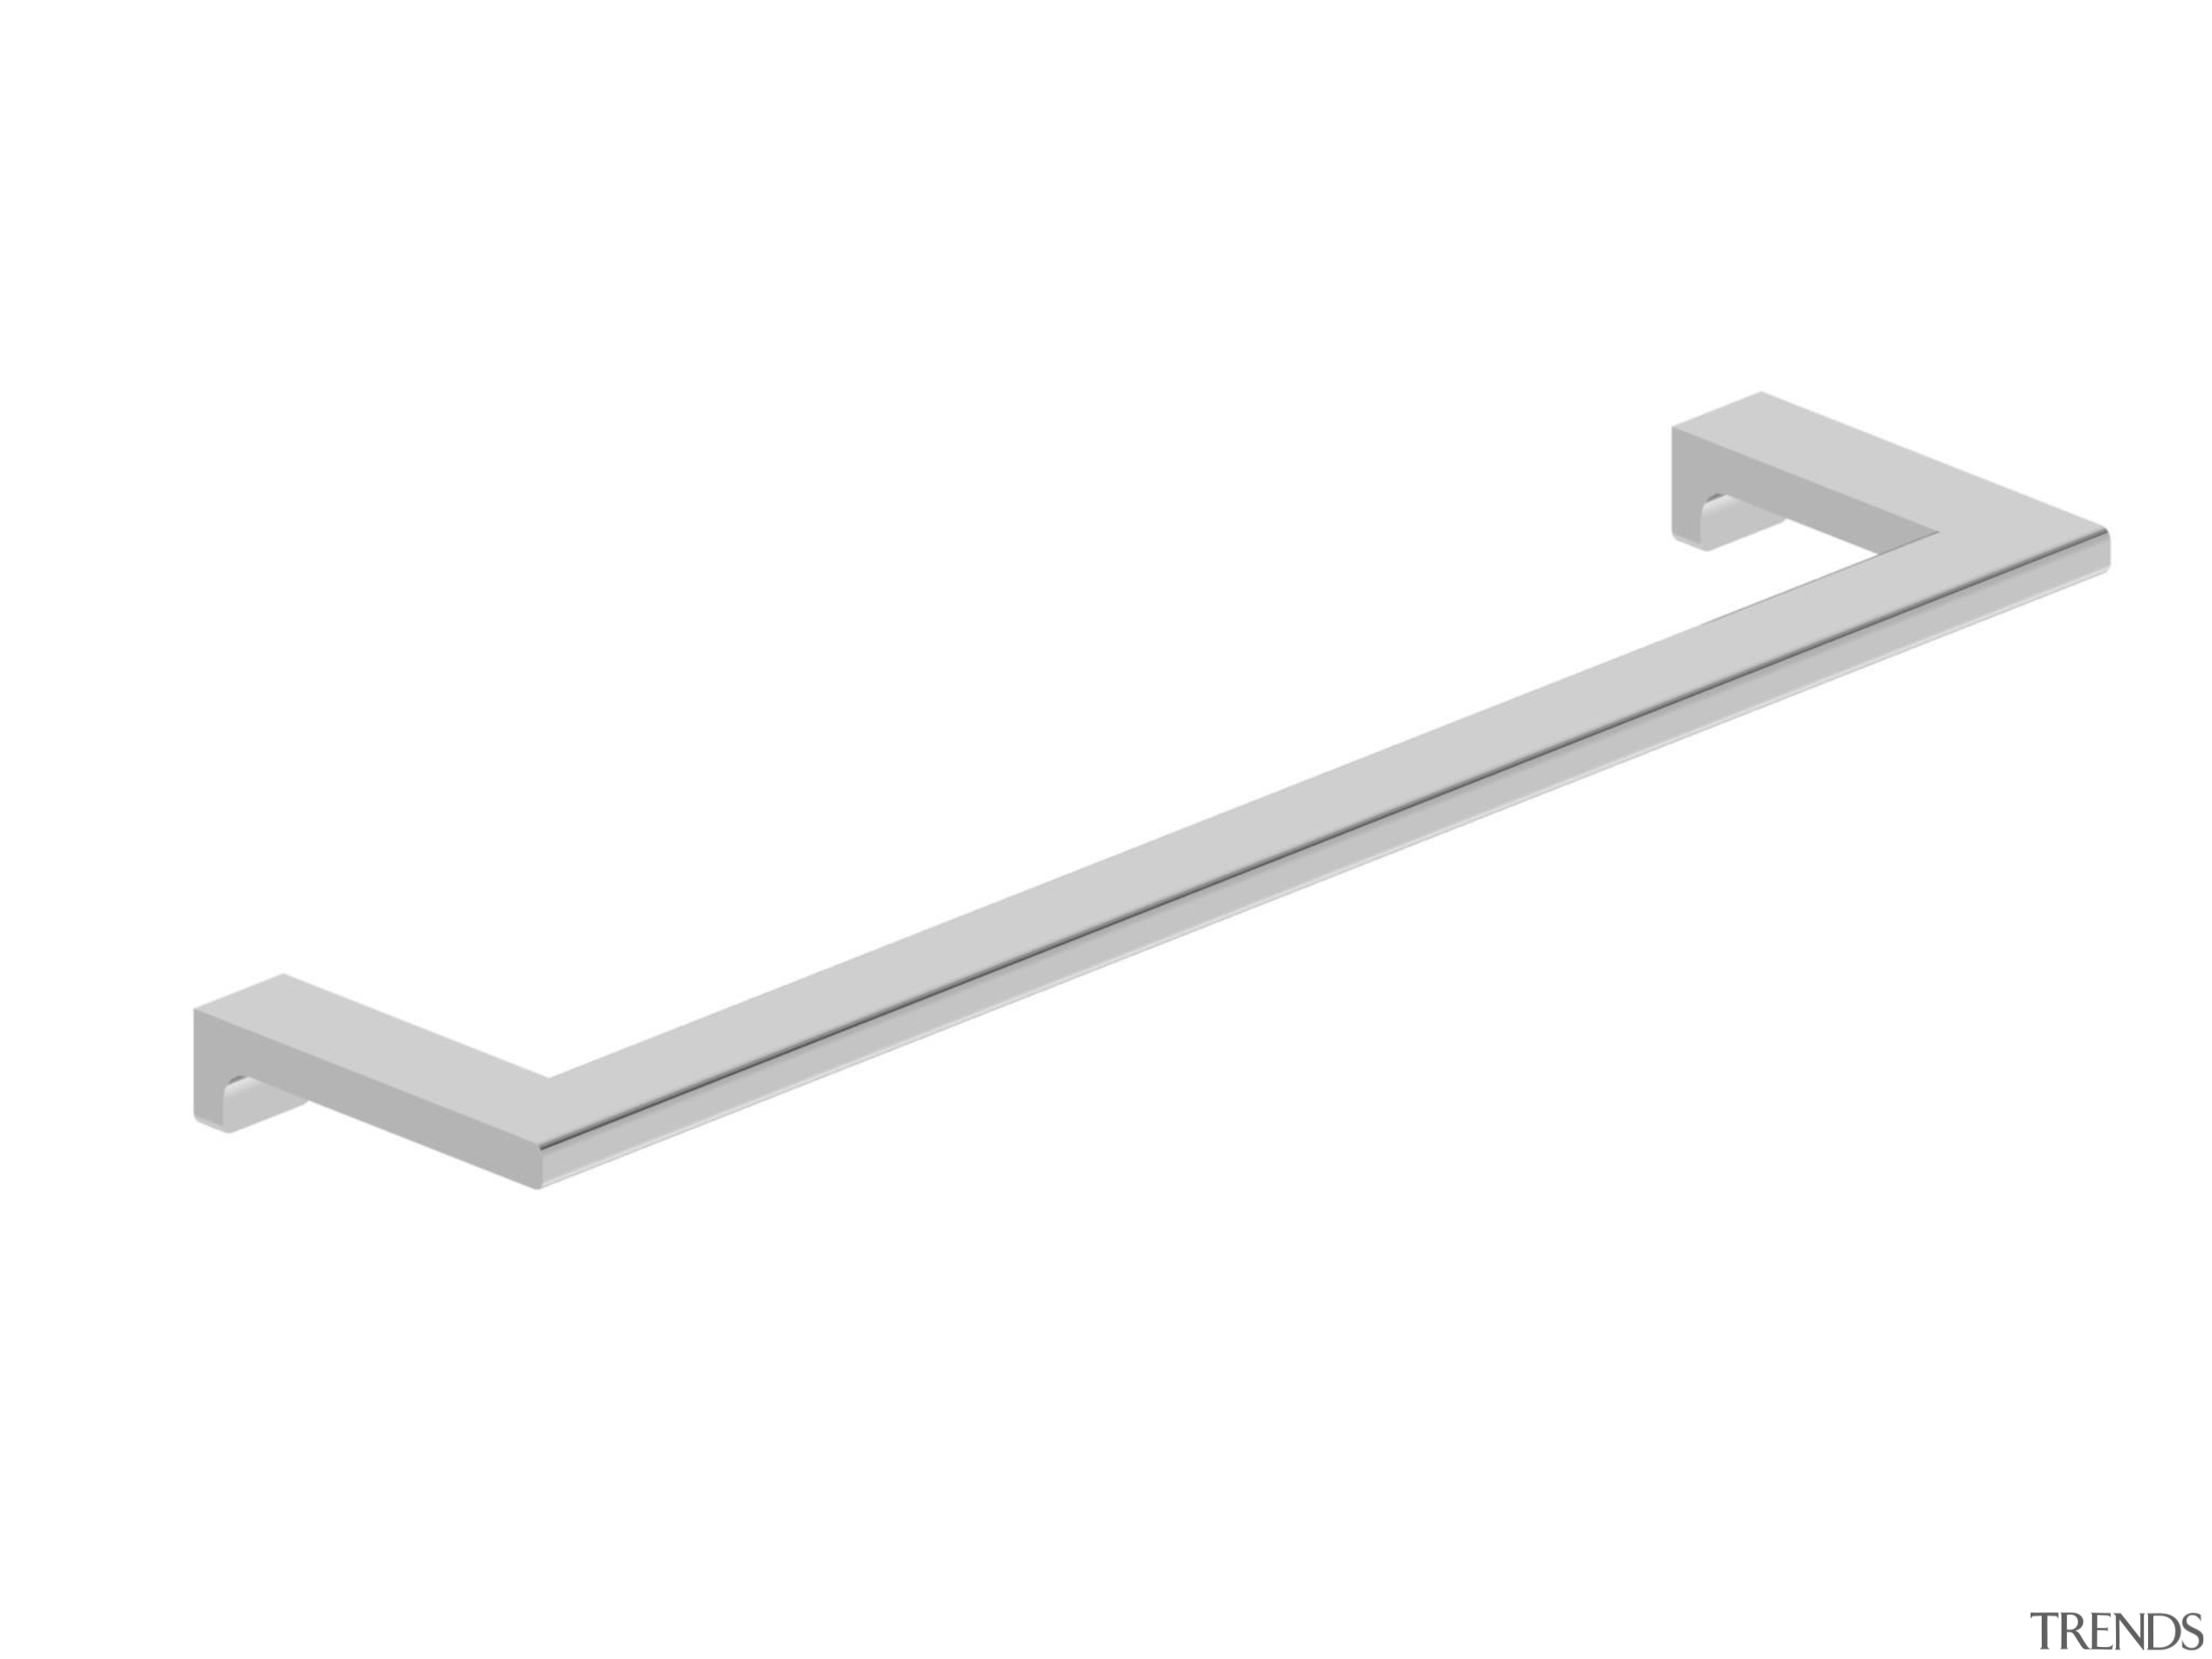 • Manufactured in Australia• Warranty 10 Years• DirectConnect angle, bathroom accessory, hardware accessory, line, product design, white